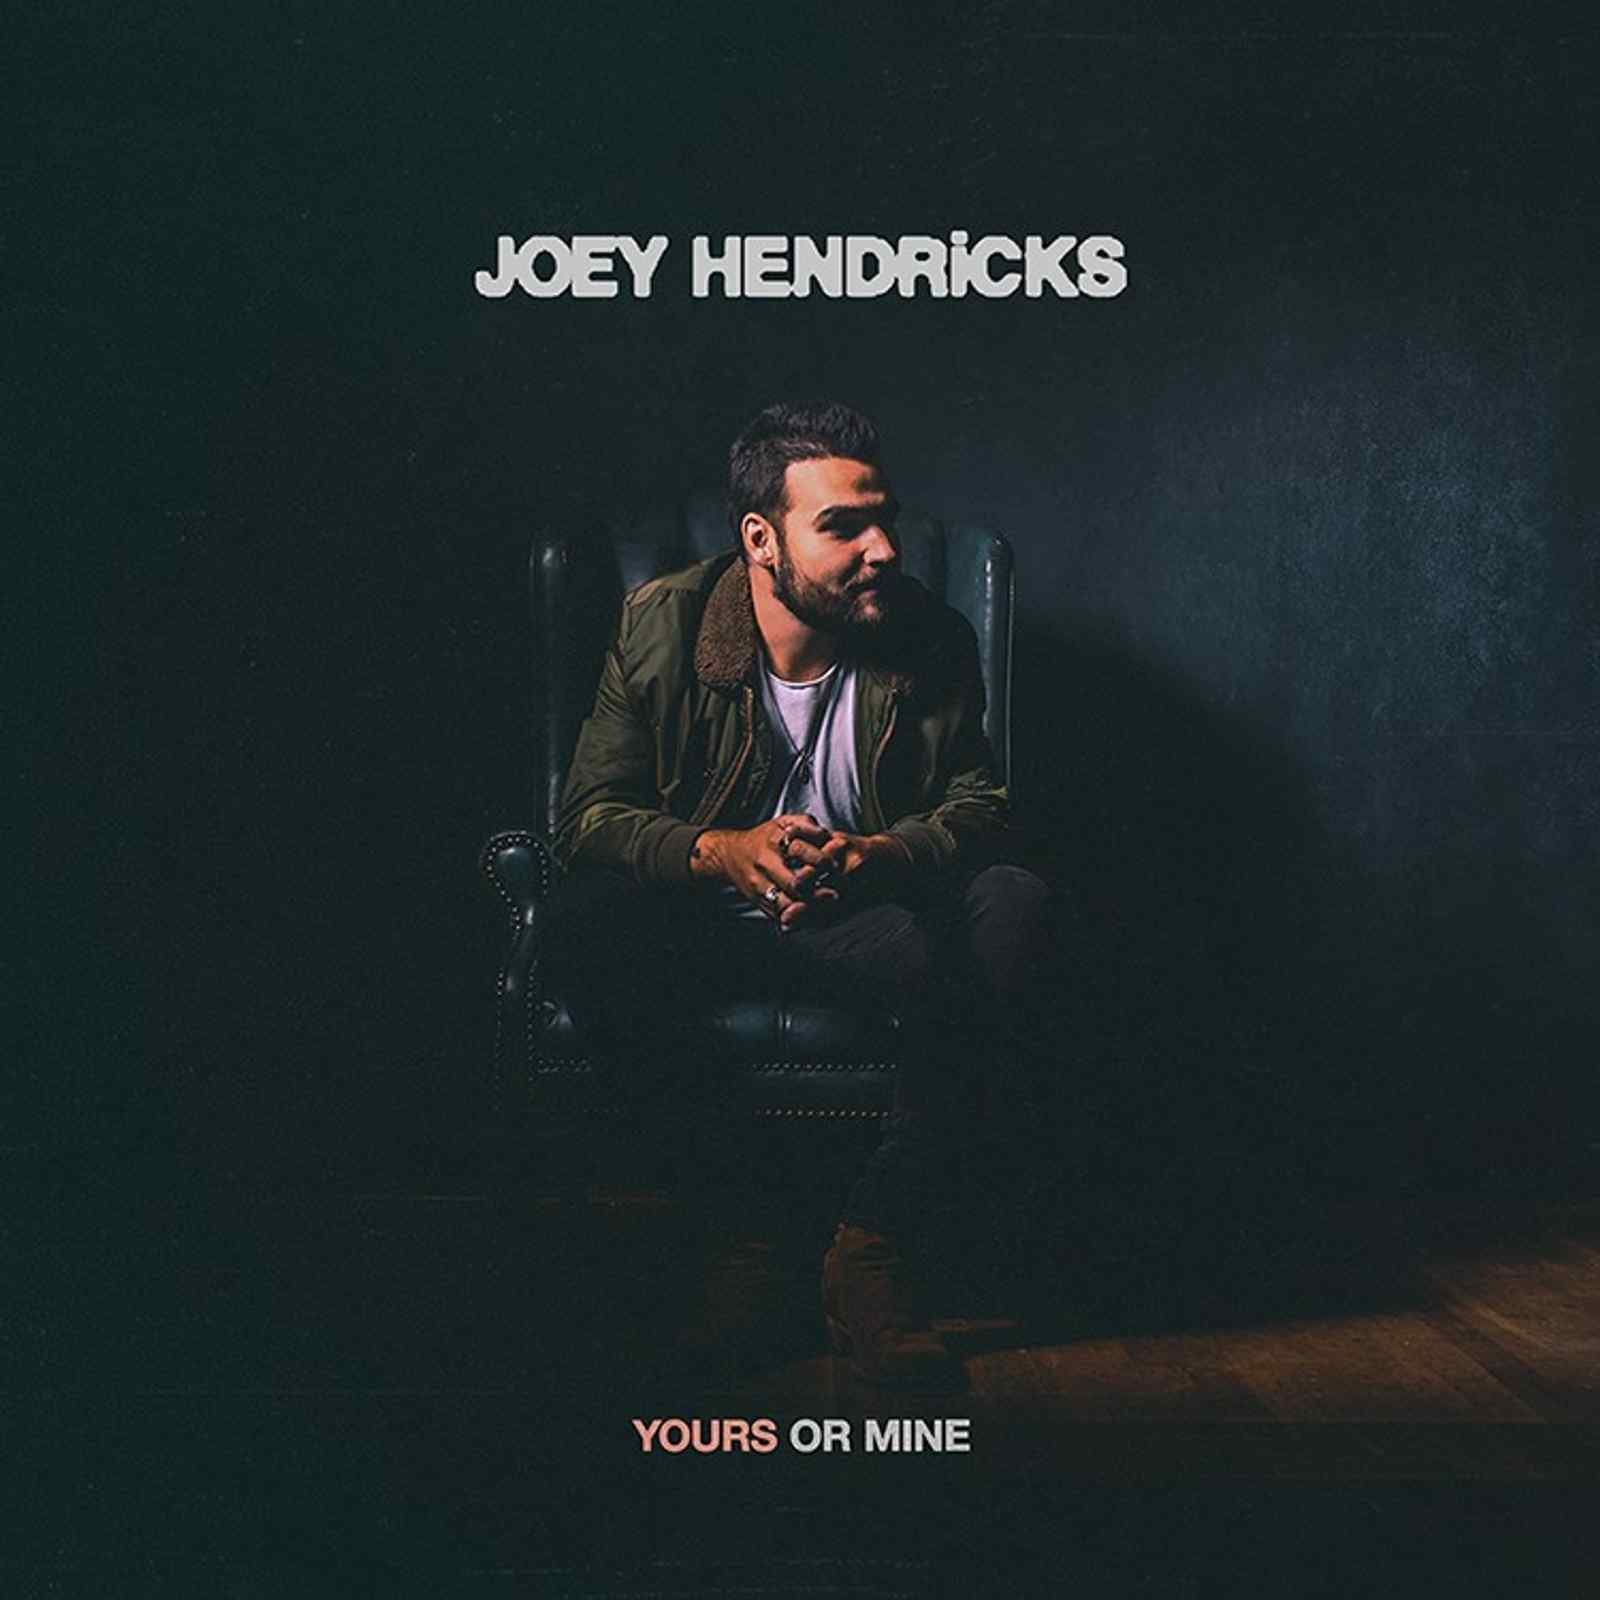 """New Song: """"Yours or Mine"""" by Joey Hendricks"""